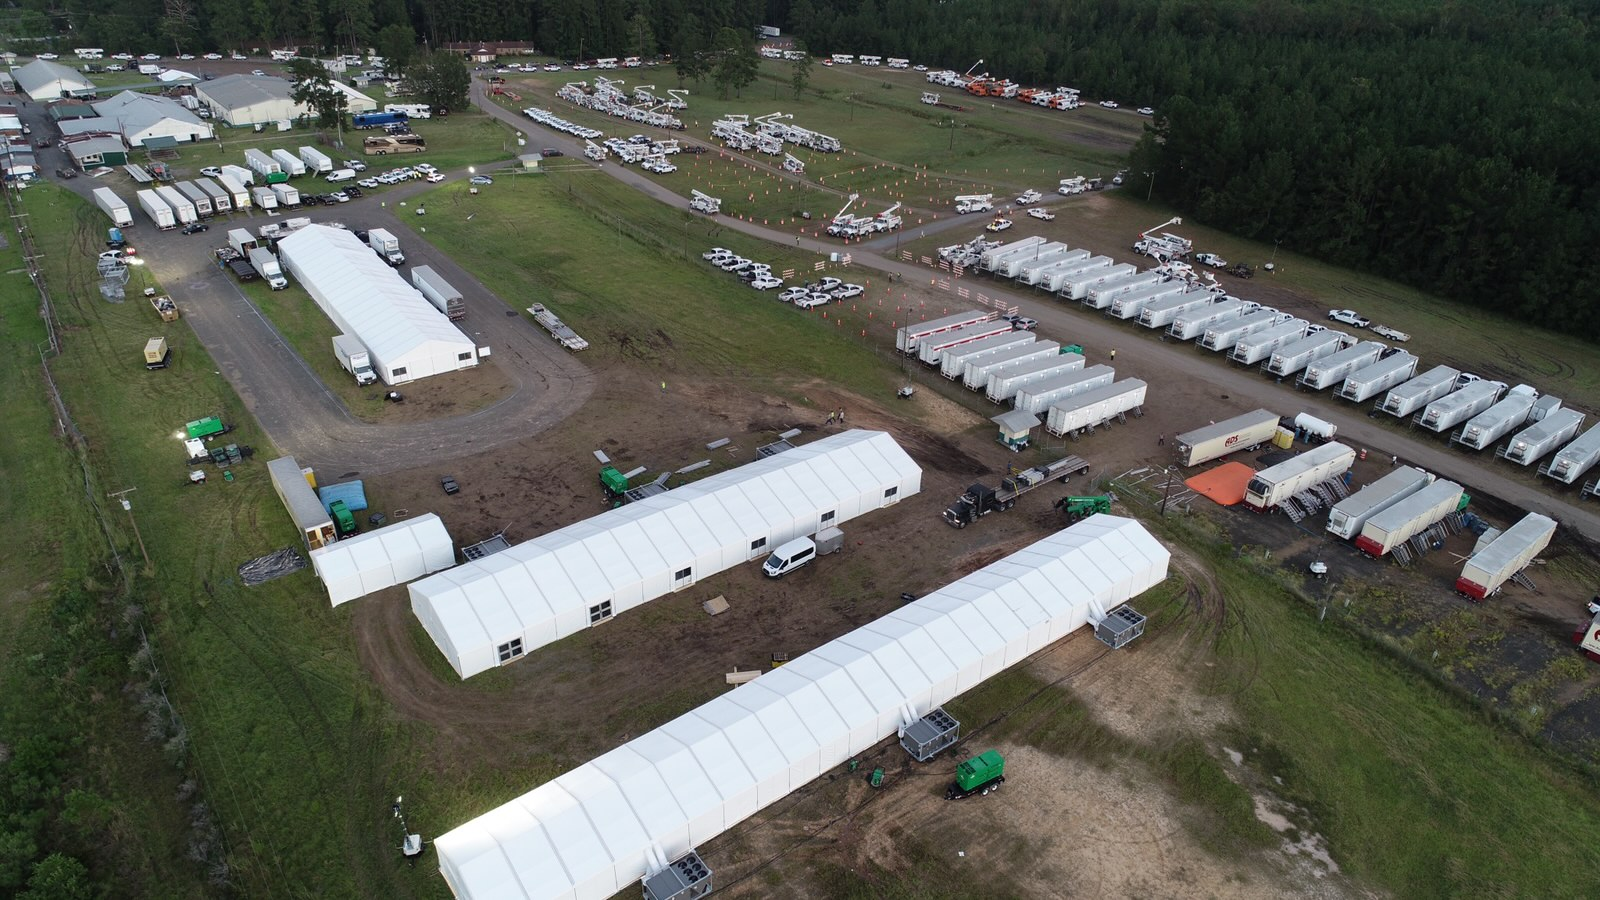 Lodging Solutions/Industrial Tents Base Camp for Disaster Relief Relief